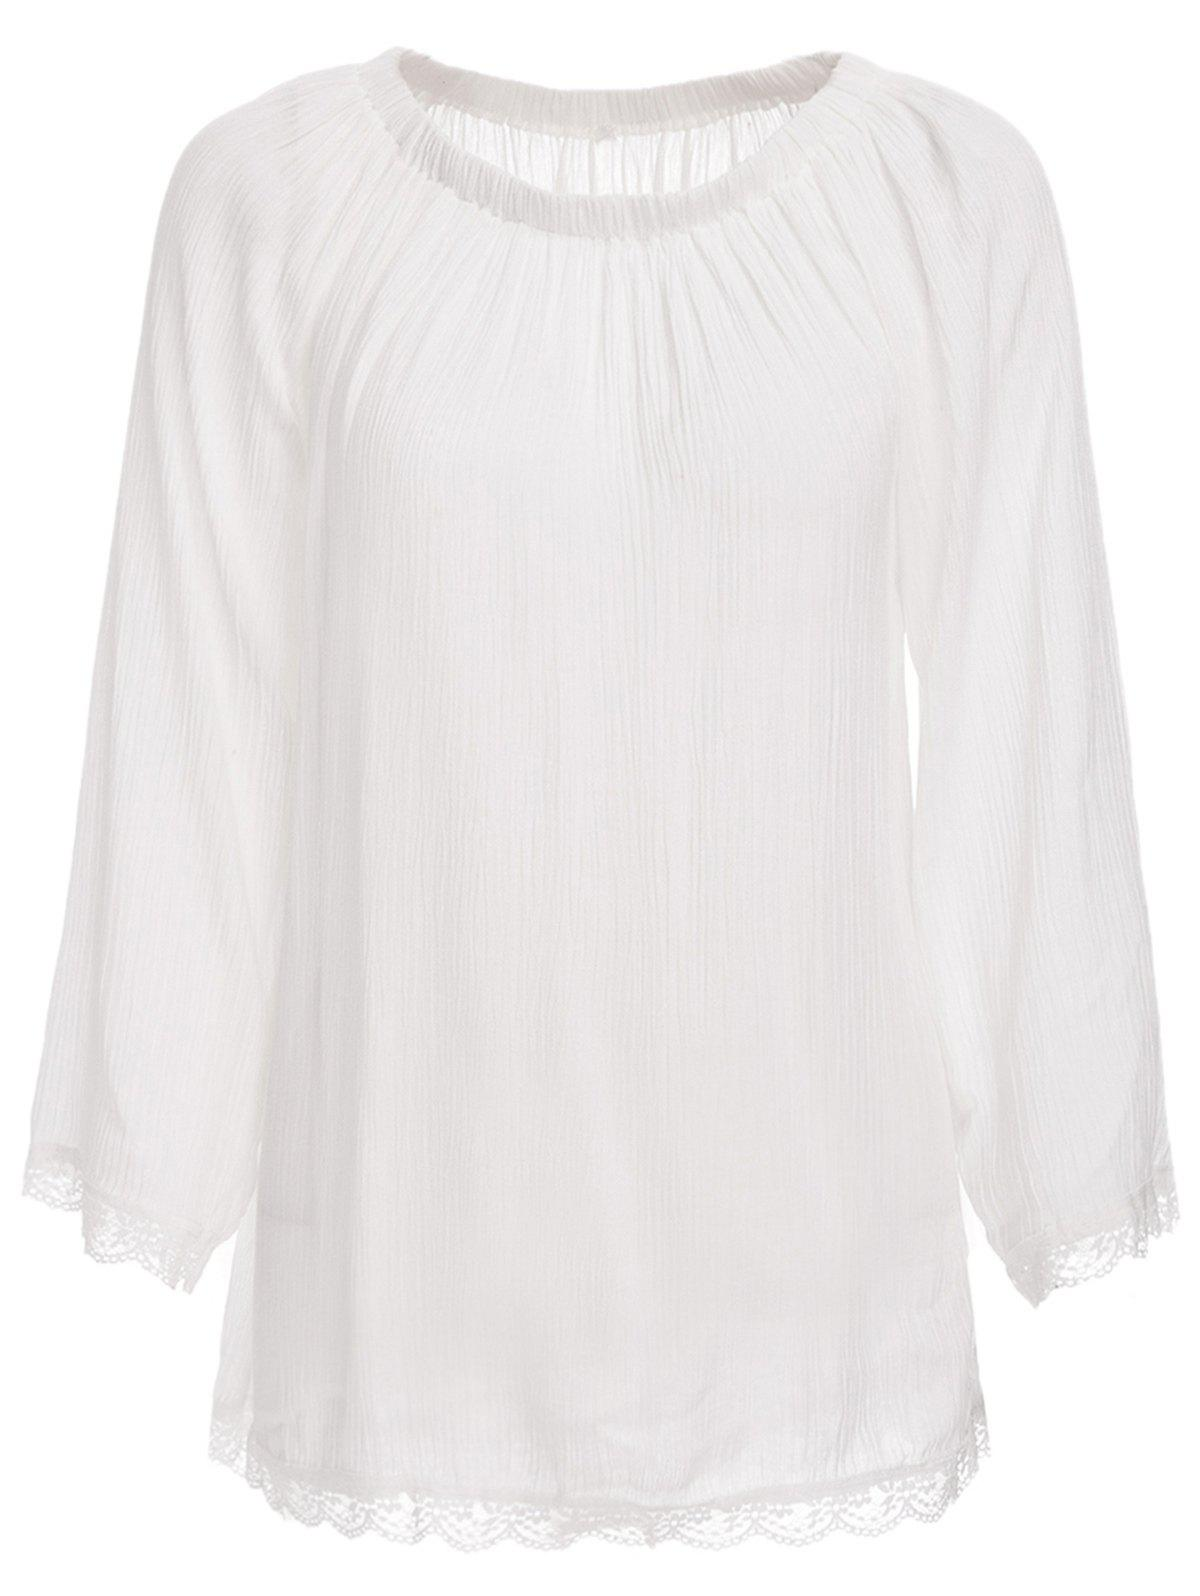 Trendy Off The Shoulder manches longues See-Through Cover-Up pour les femmes - Blanc L